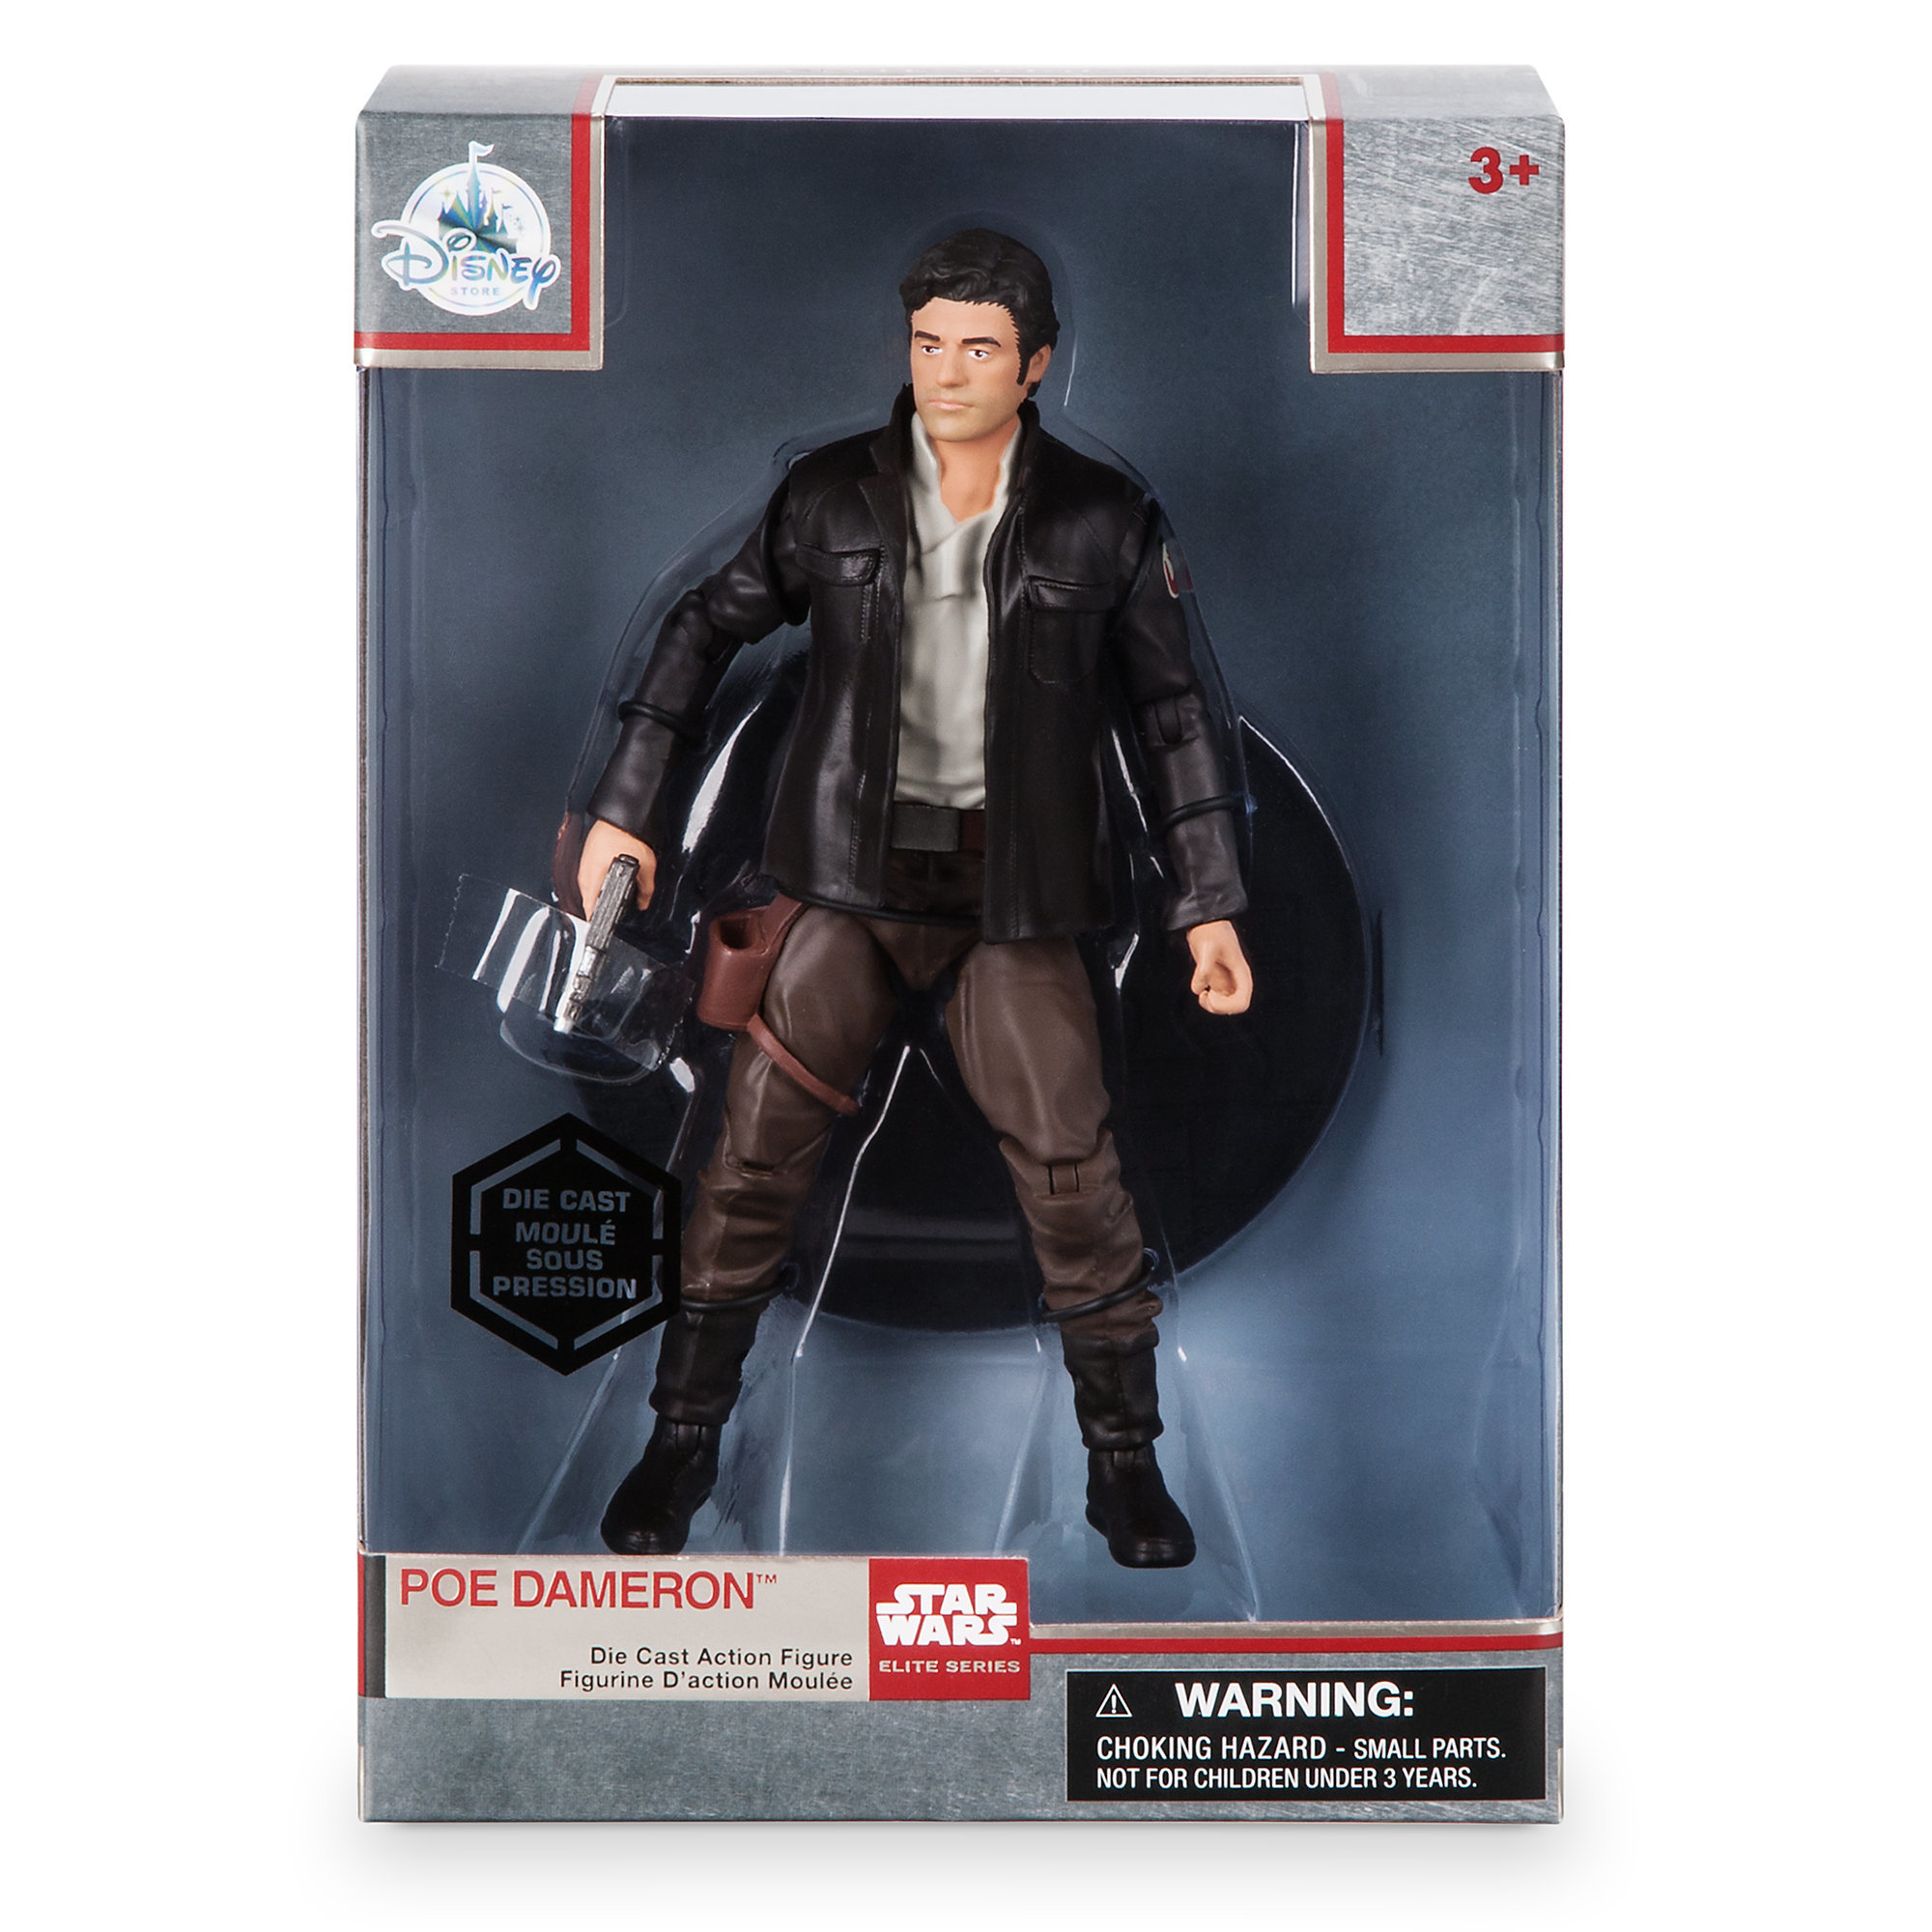 TLJ Elite Series Poe Dameron Figure 1